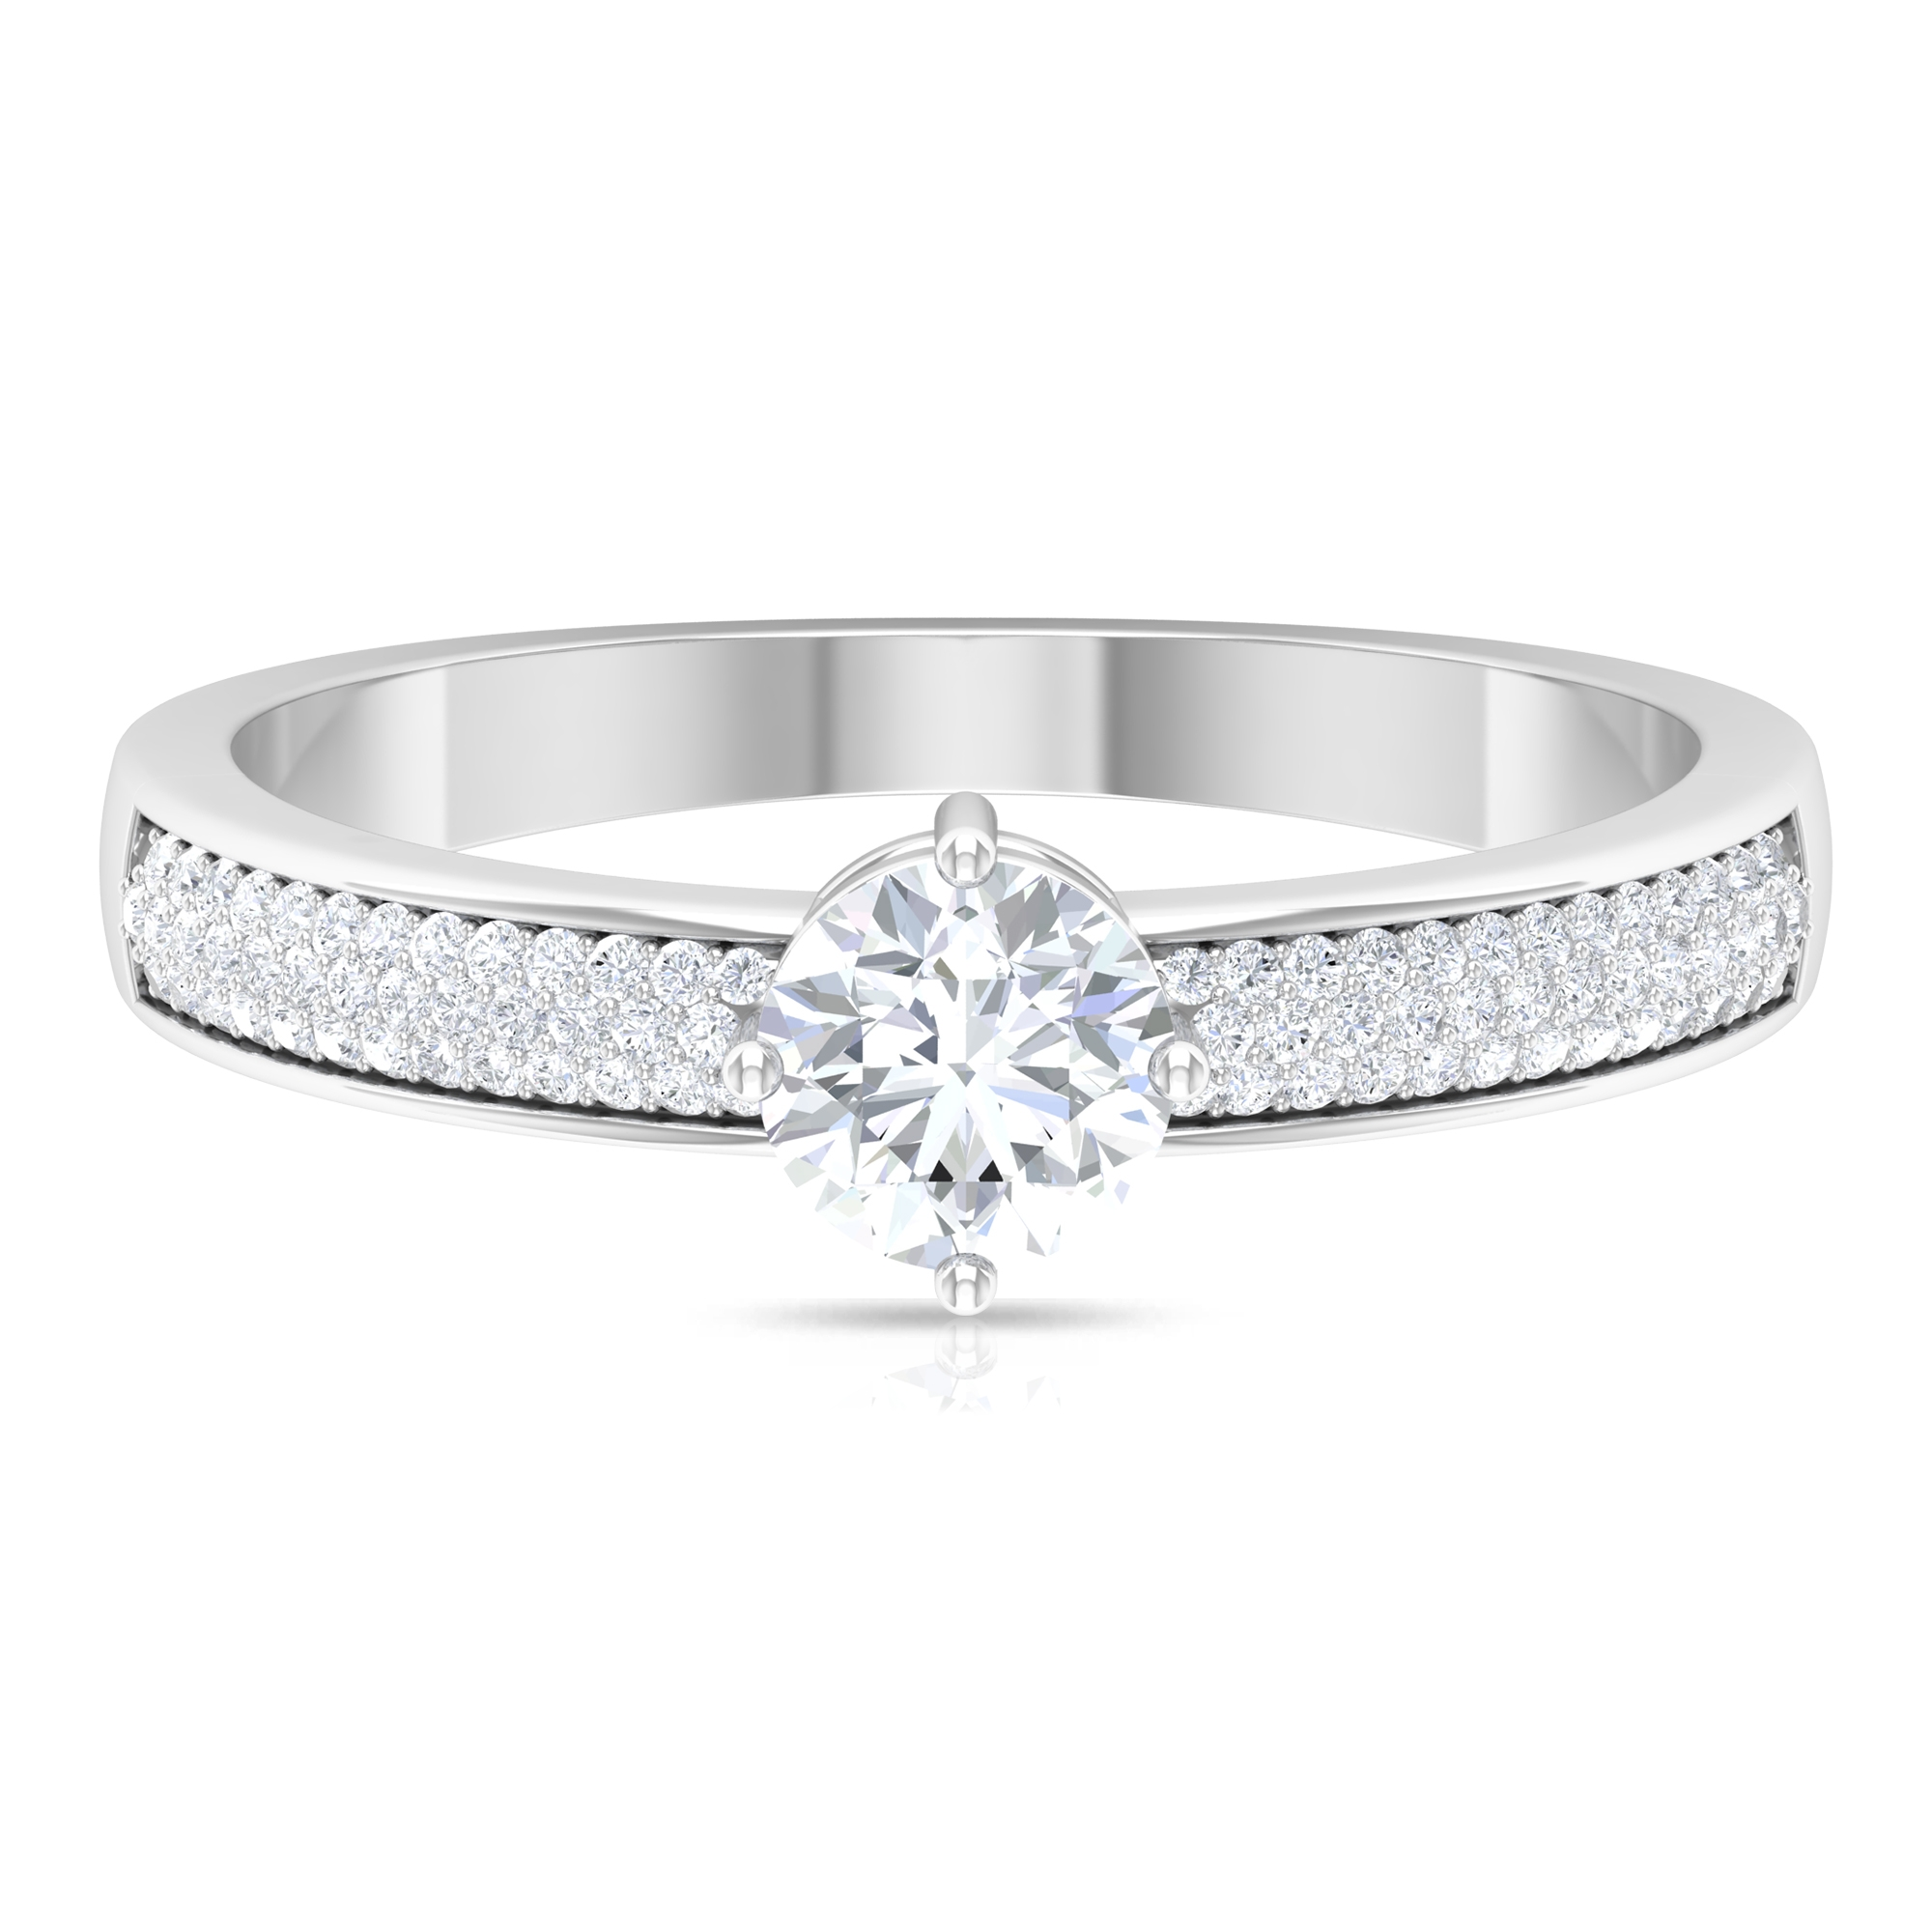 April Birthstone 3/4 CT Four Prong Diagonal Set Diamond Solitaire Ring with Pave Set Side Stones